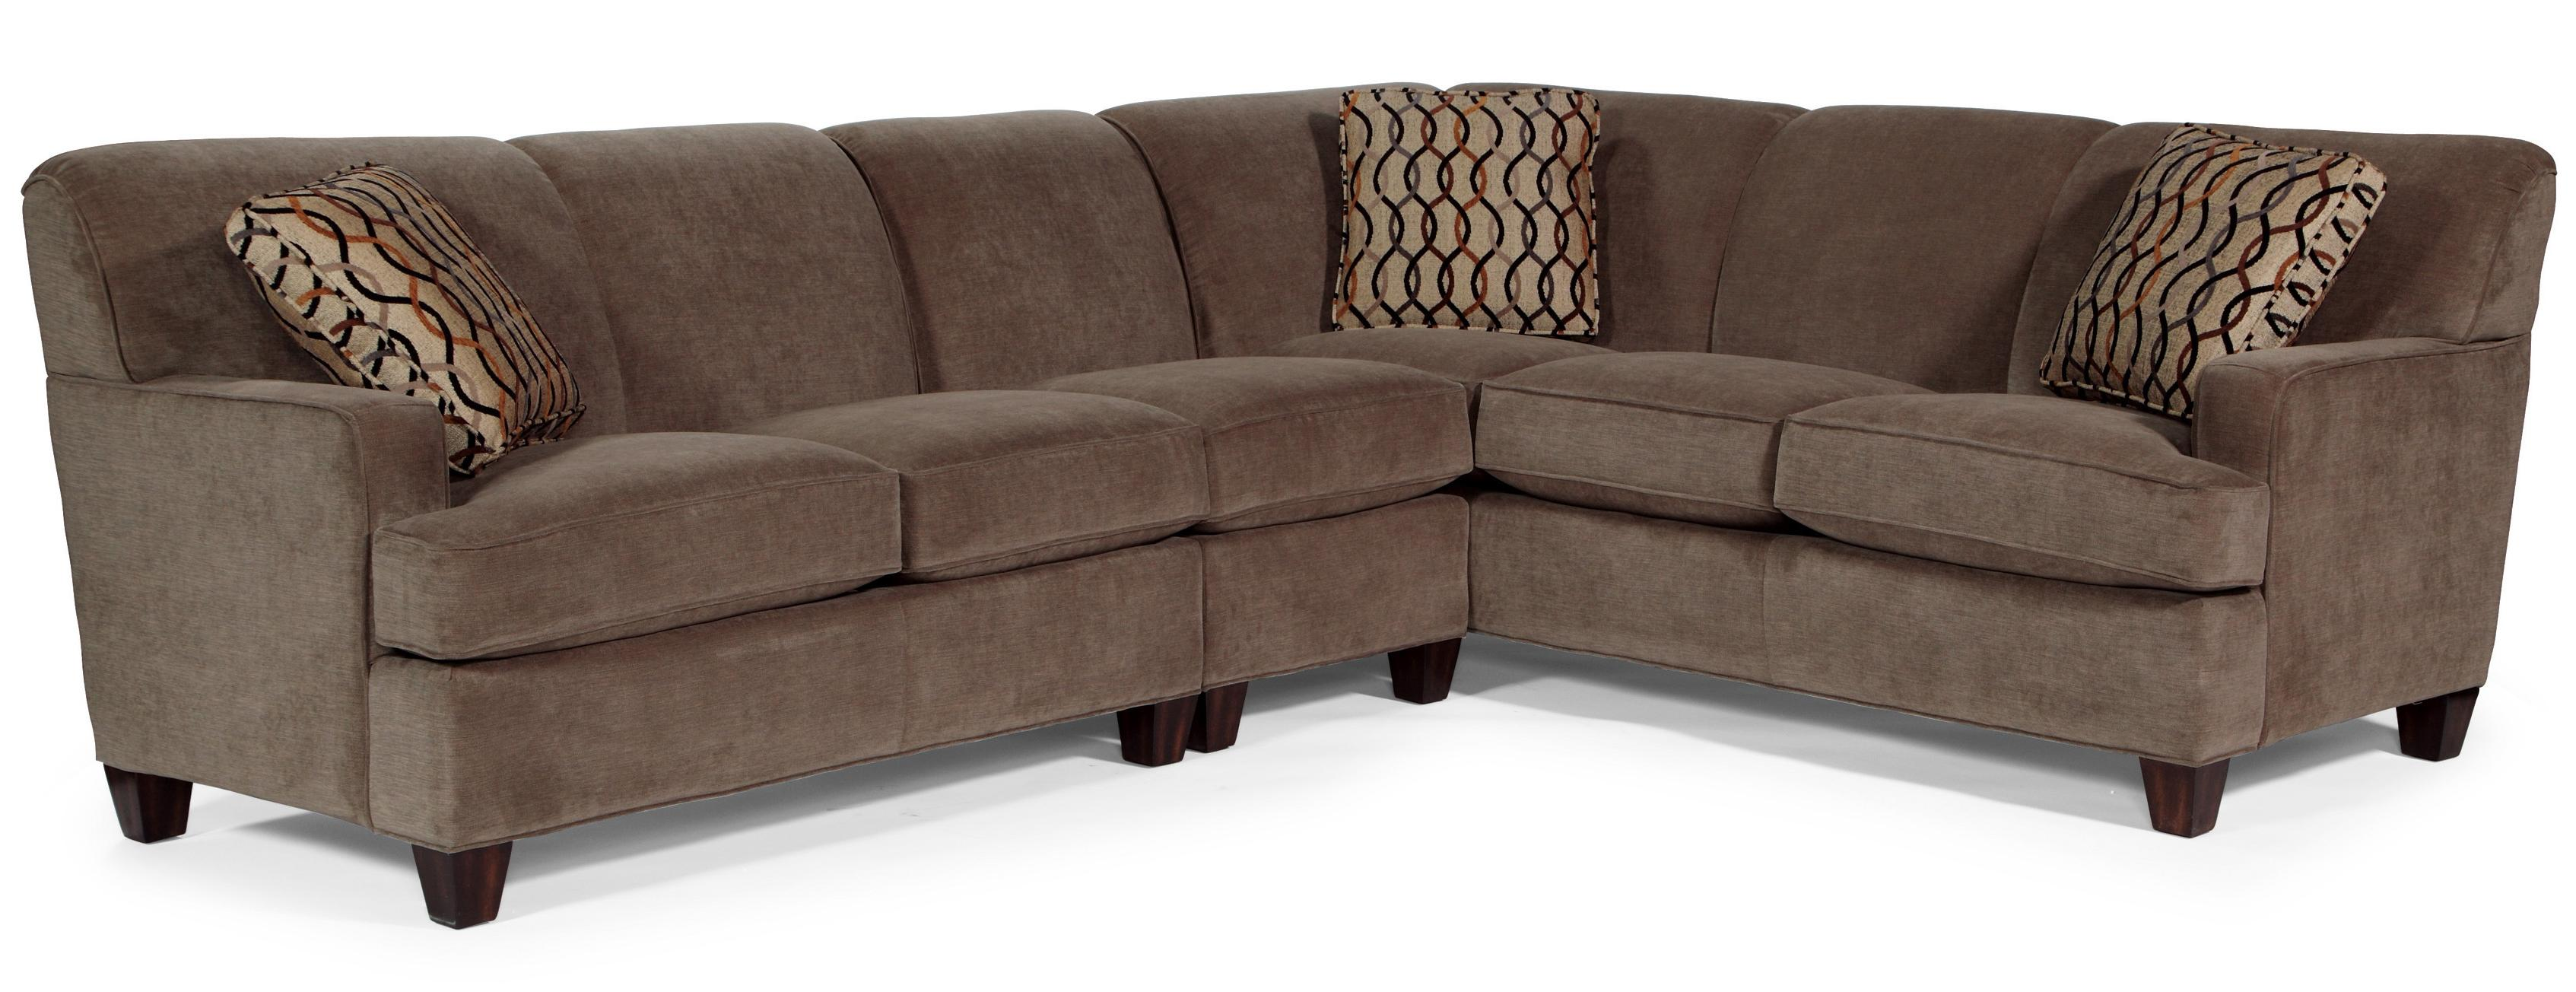 Flexsteel Dempsey Contemporary 3 Piece Sectional Sofa With